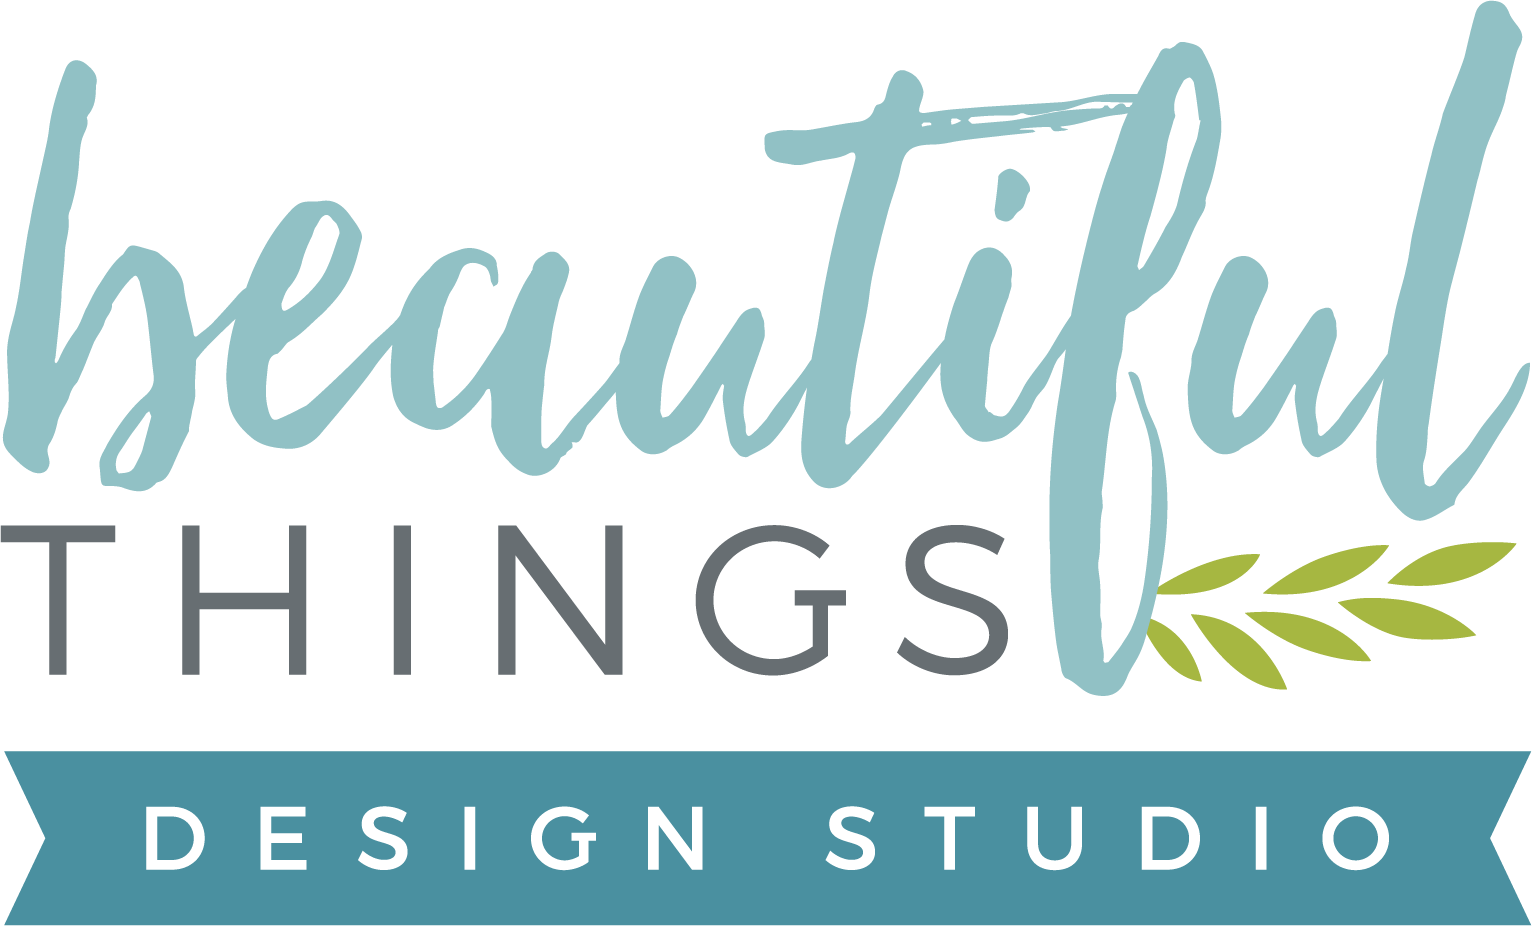 Beautiful Things Design Studio logo